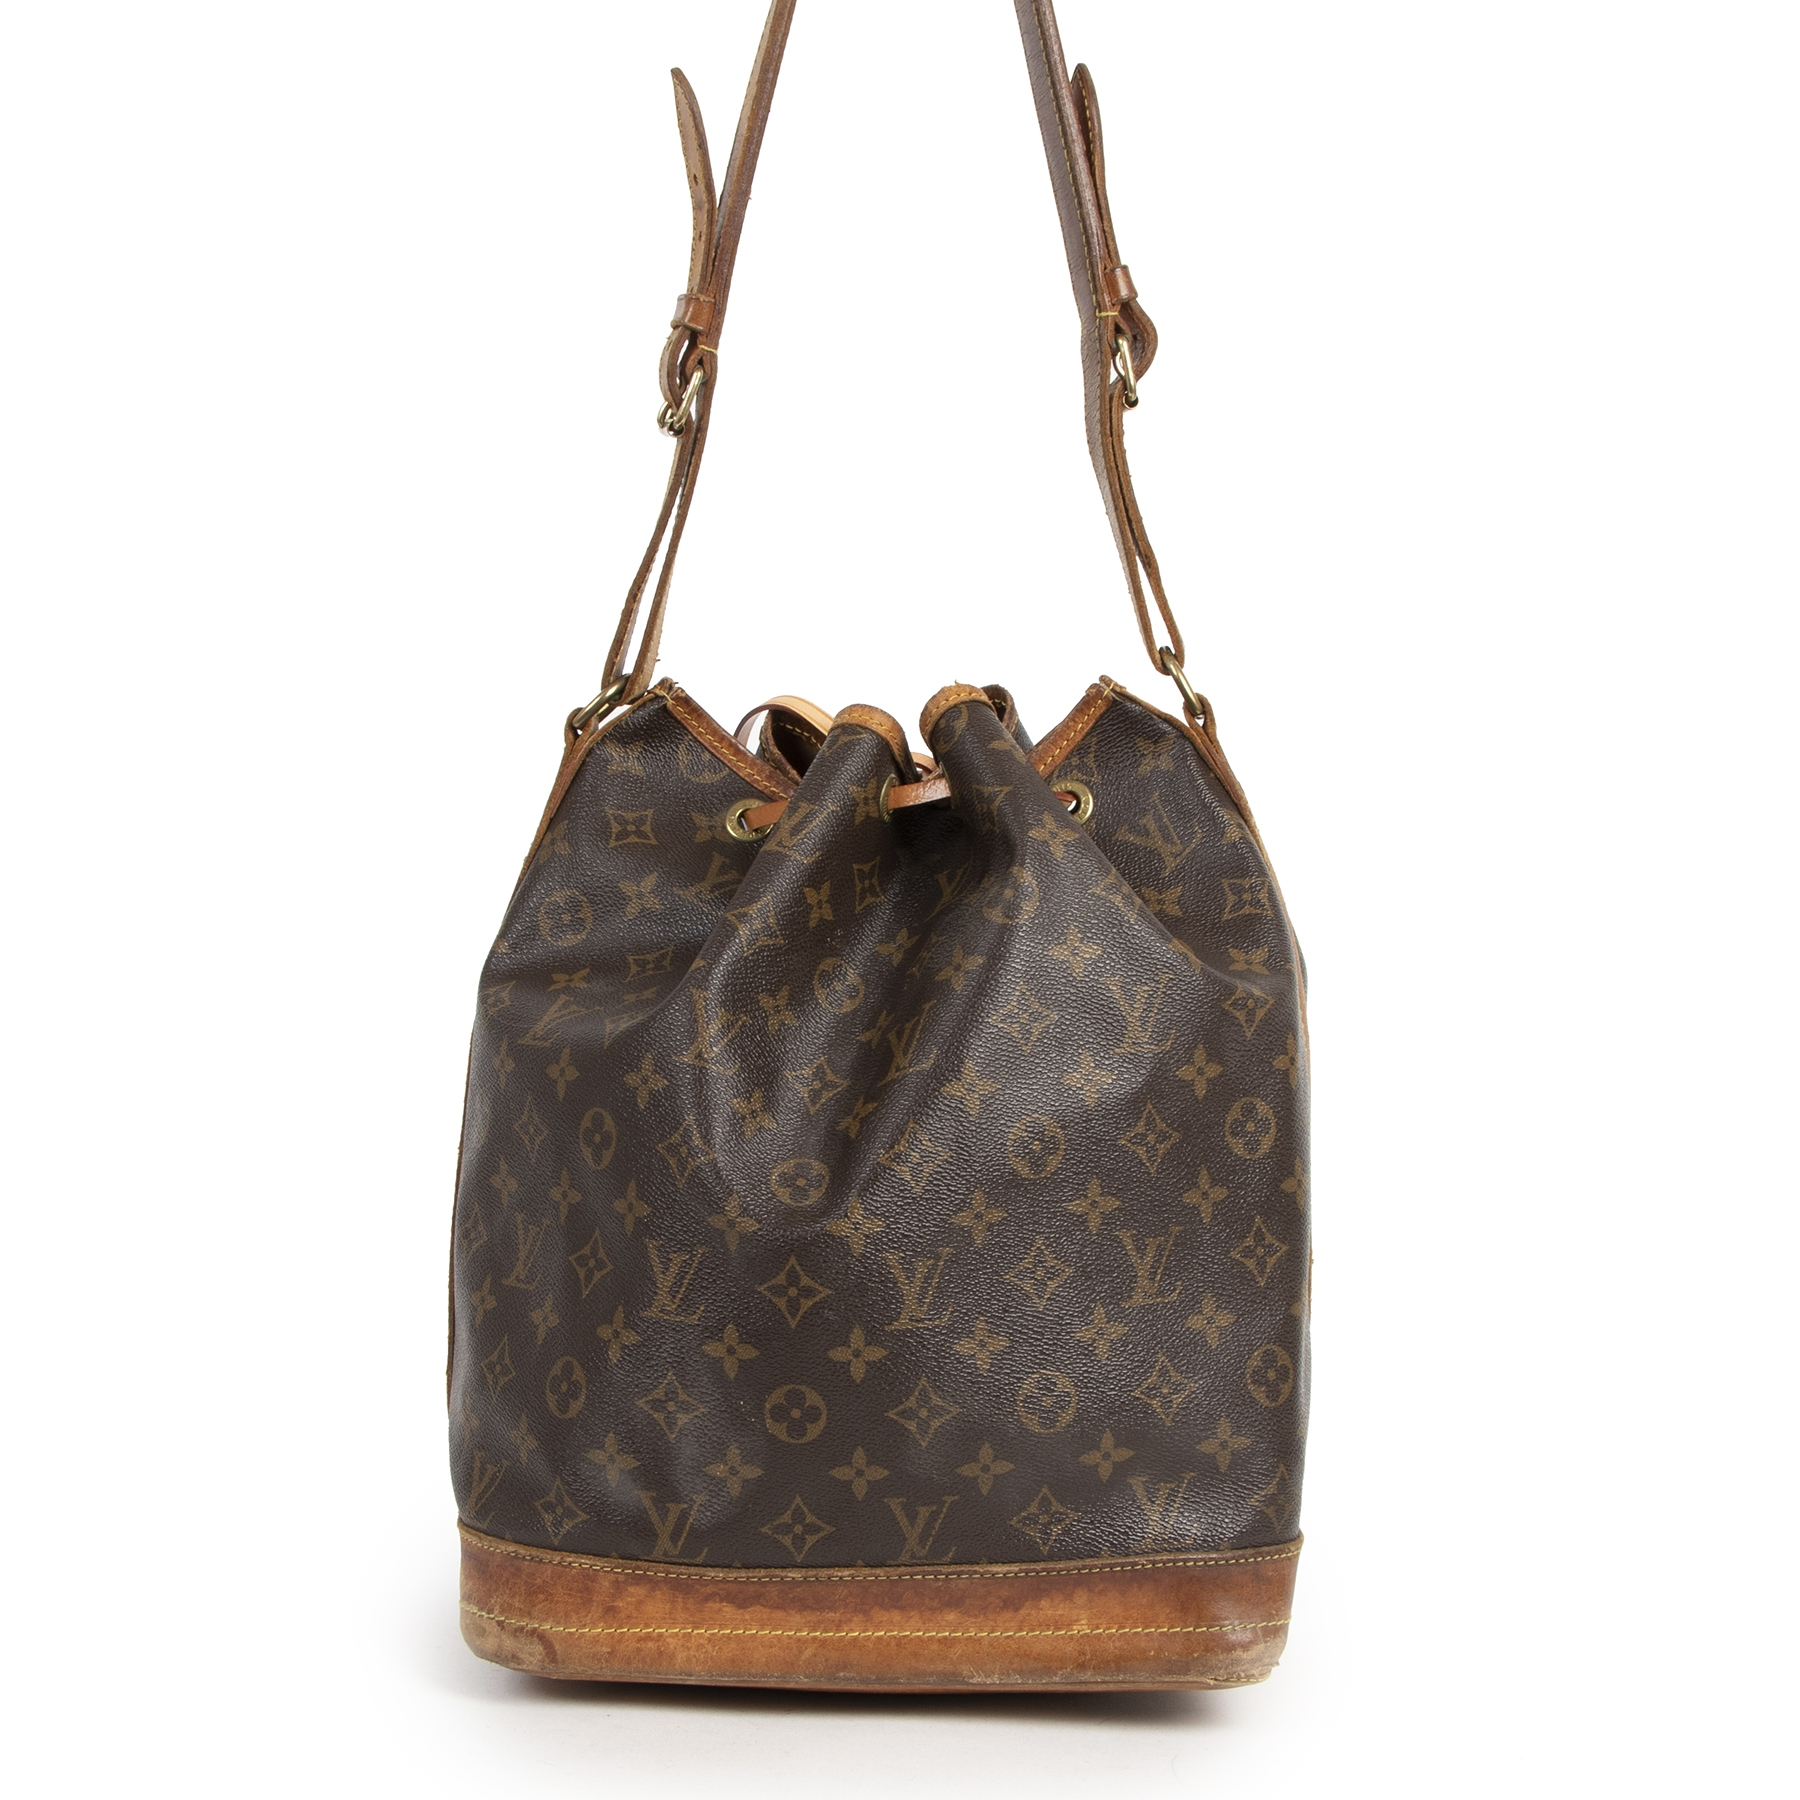 Authentic secondhand Louis Vuitton Monogram Noé Bucket Bag designer bags luxury vintage webshop safe secure online shopping worldwide shipping delivery